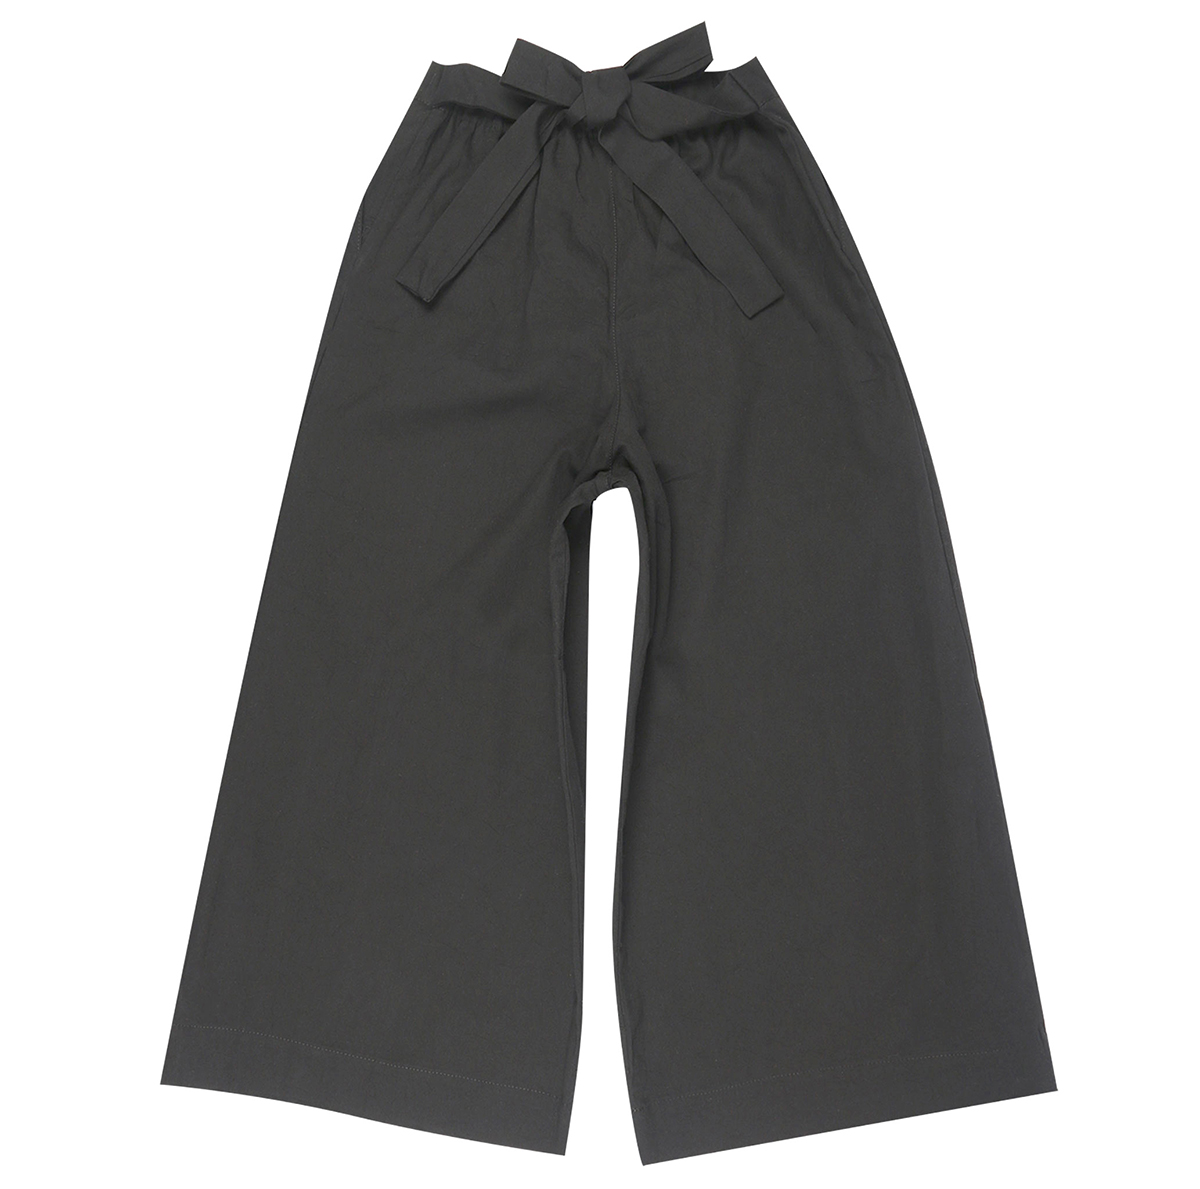 CHARCOAL RINSED OXFORD - Wide Pants